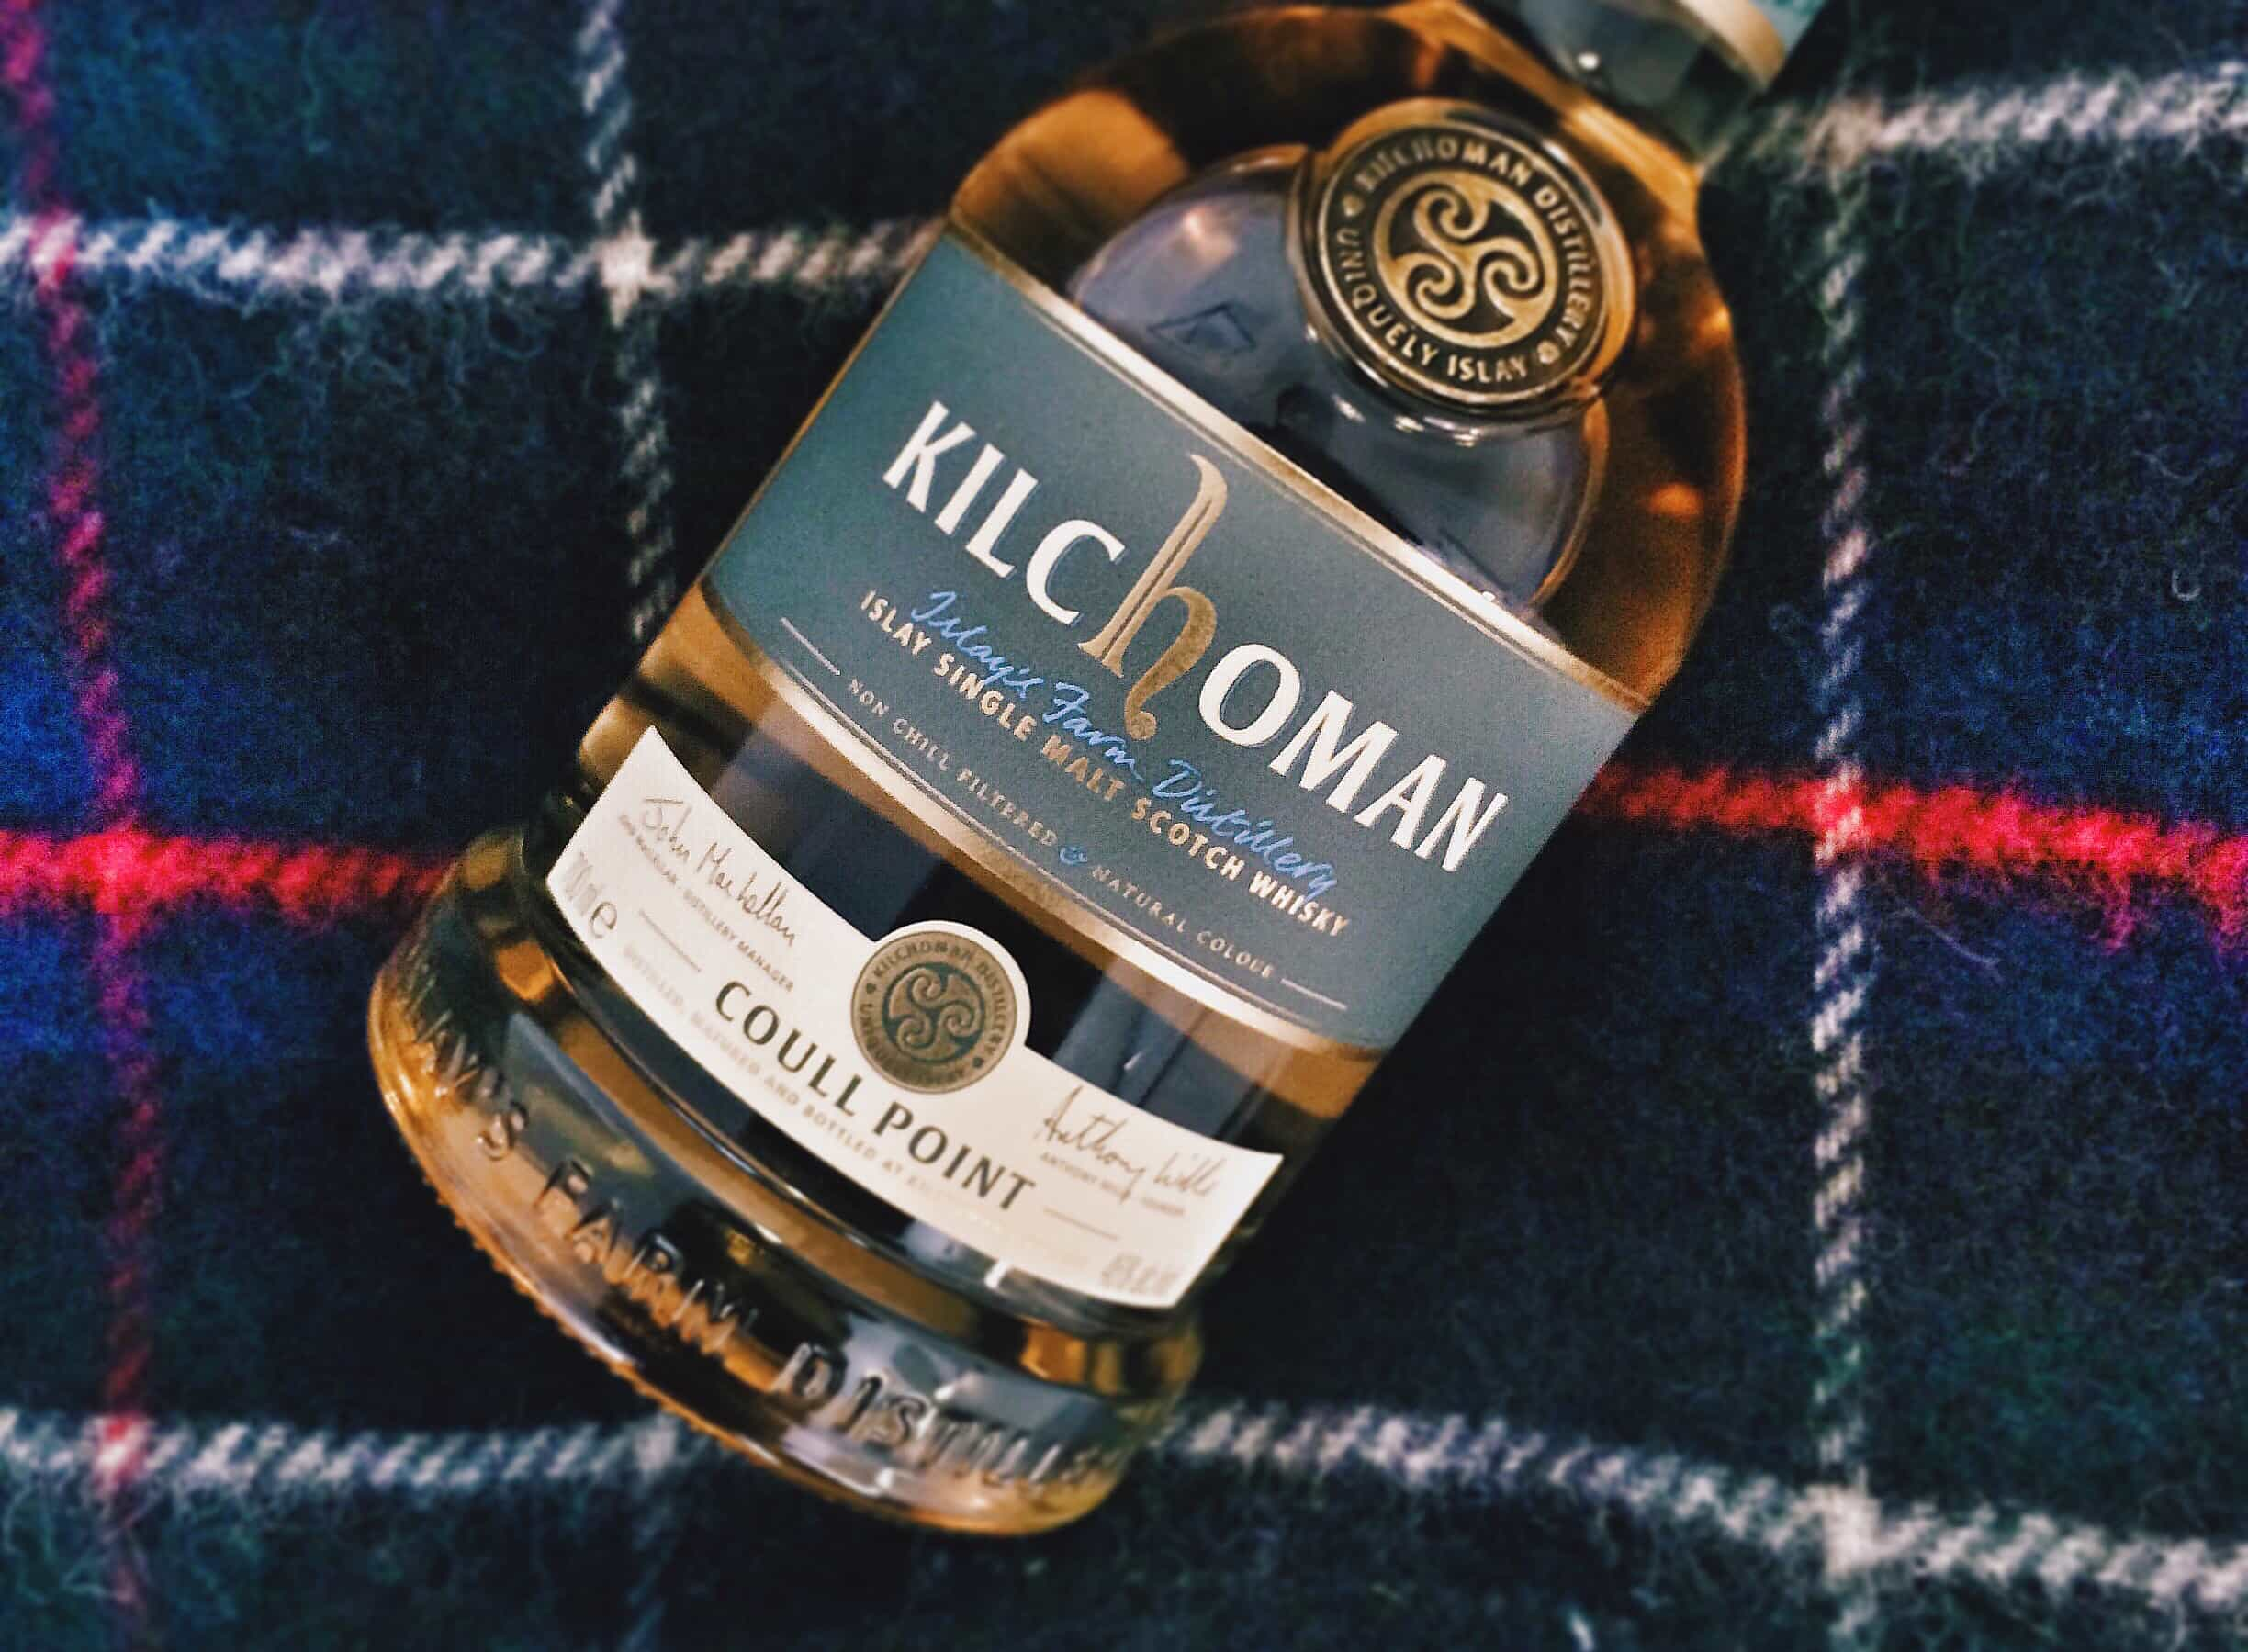 Kilchoman Coull Point